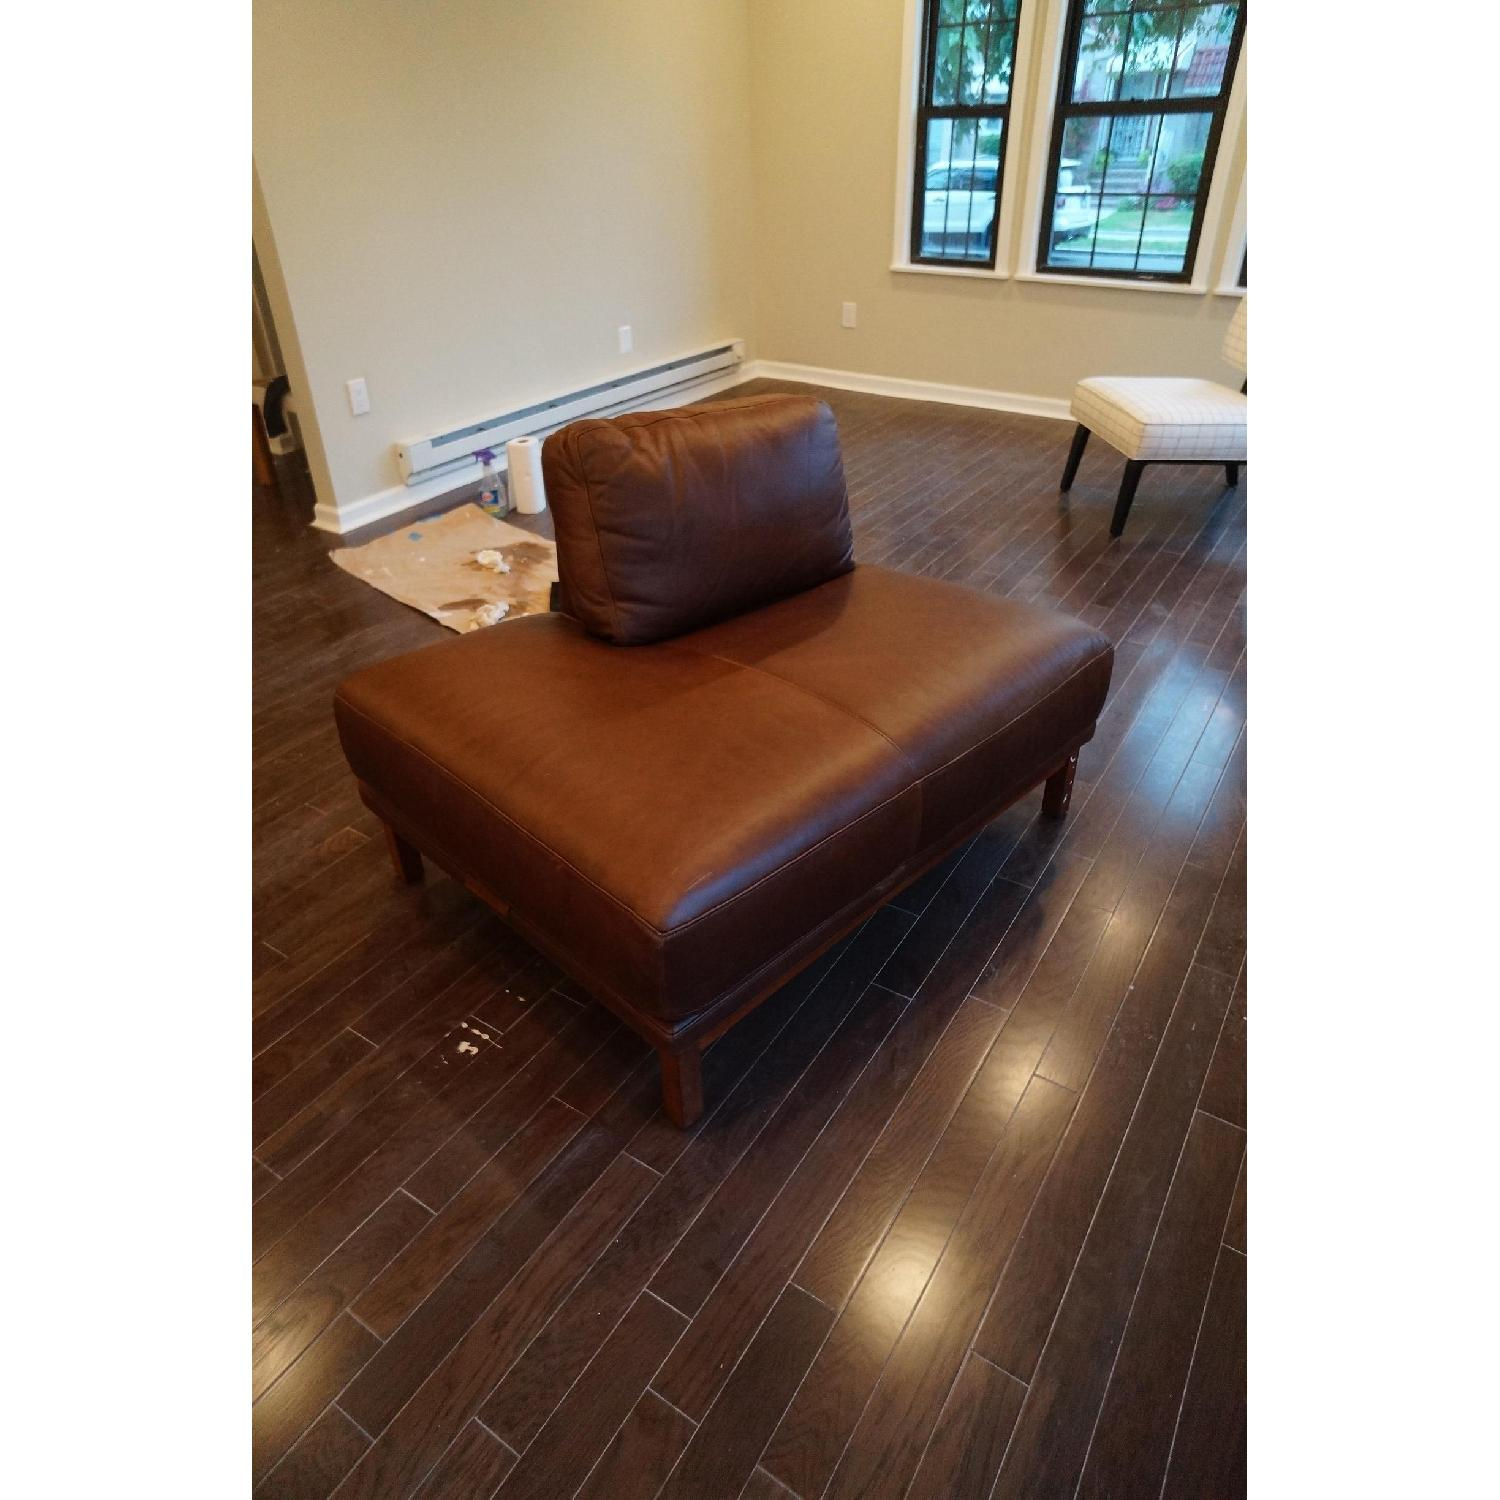 West Brown Leather Chaise Lounge Chair - image-7